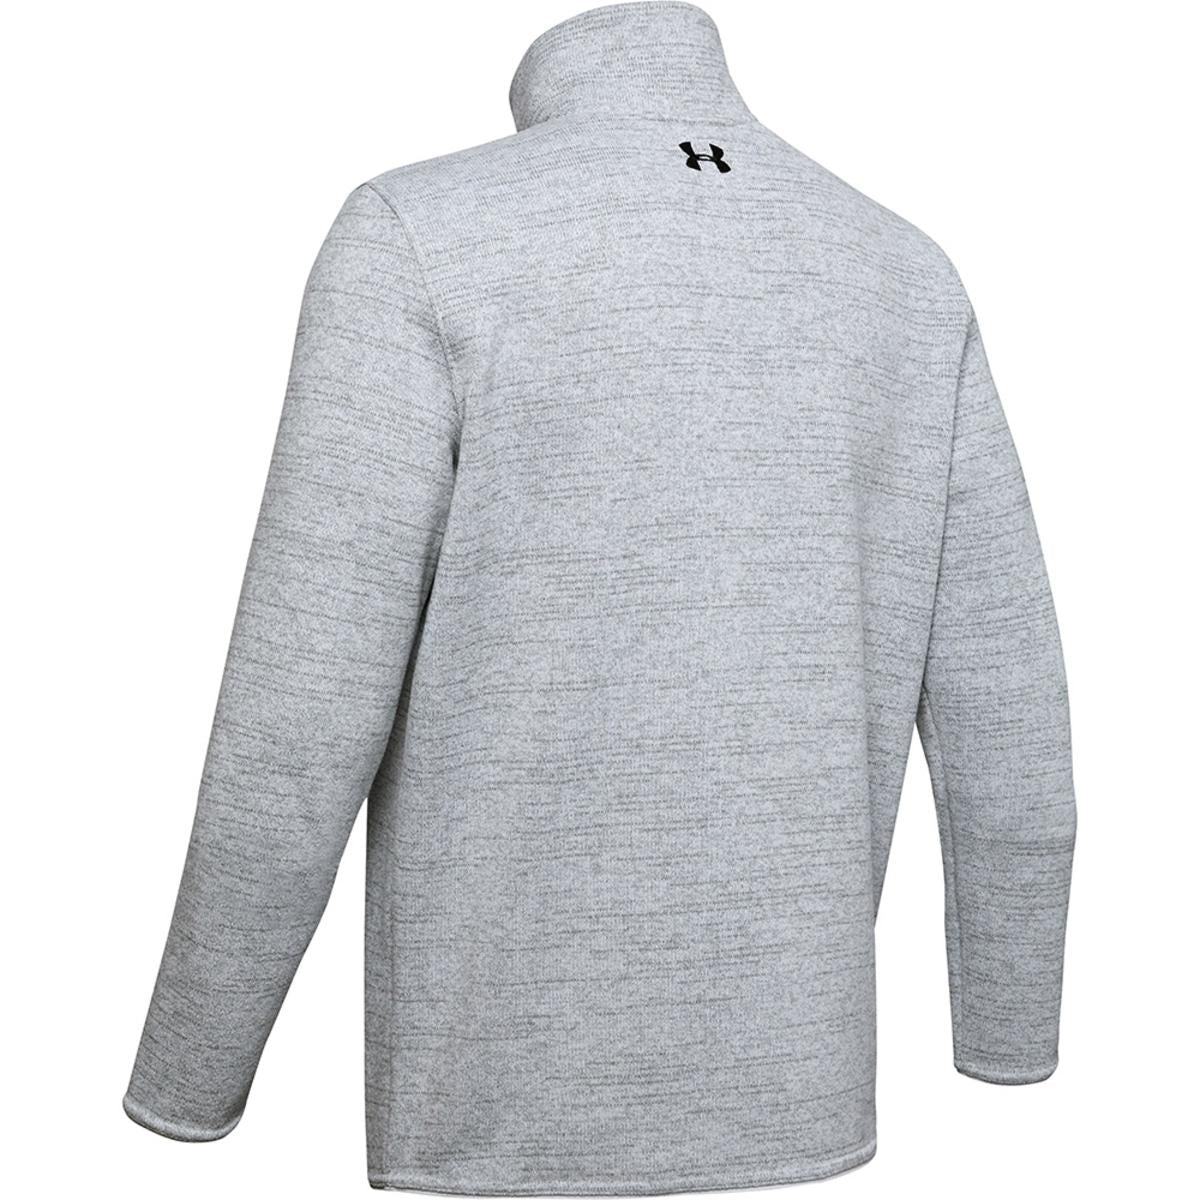 Under Armour Men's Specialist Henley 2.0 Long Sleeve